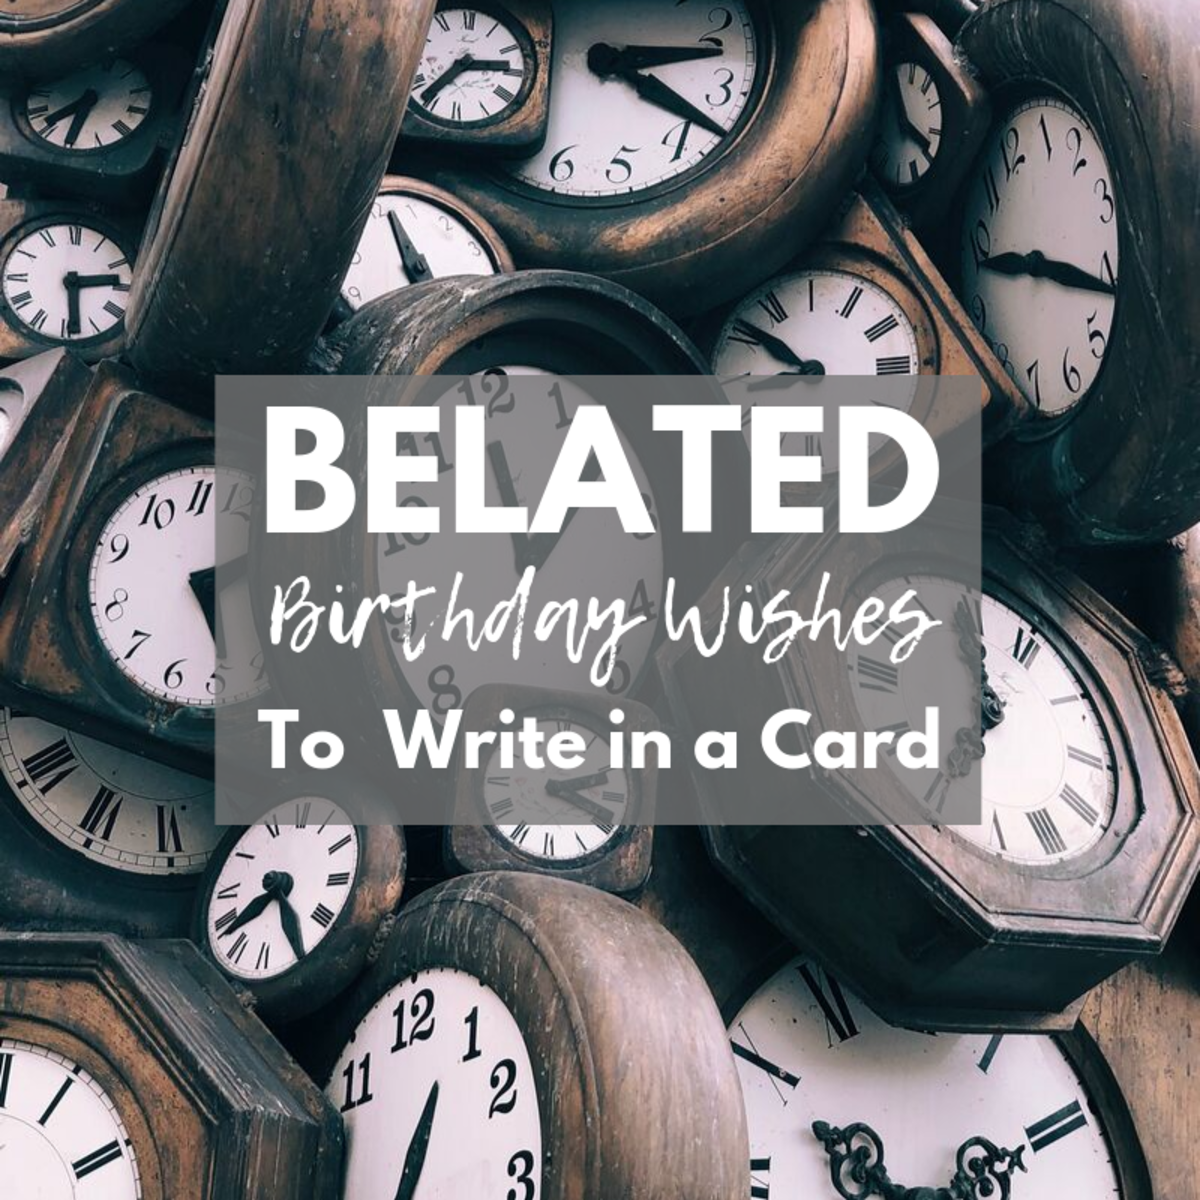 If you missed someone's birthday, your belated birthday card had better be a good one!